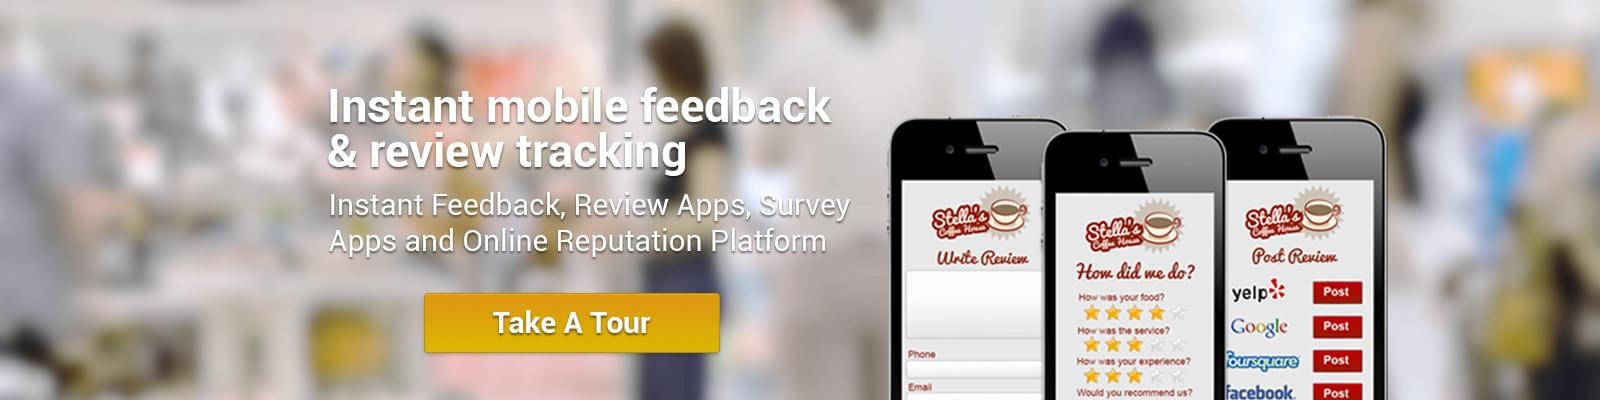 Instant Mobile Feedback and review tracking. Learn More